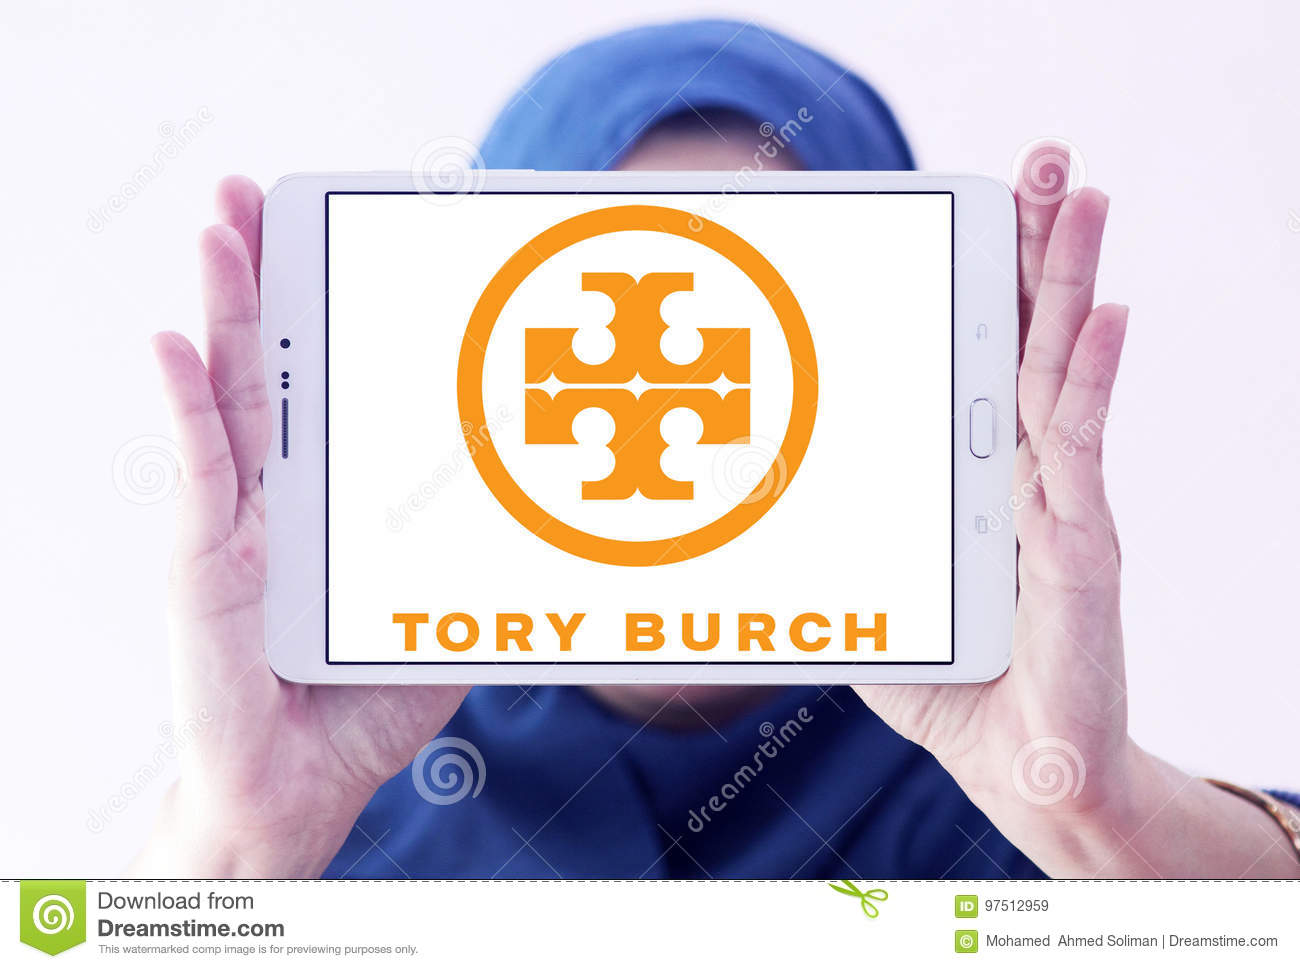 Tory burch logo editorial stock image image of burch 97512959 tory burch logo editorial stock photo buycottarizona Images